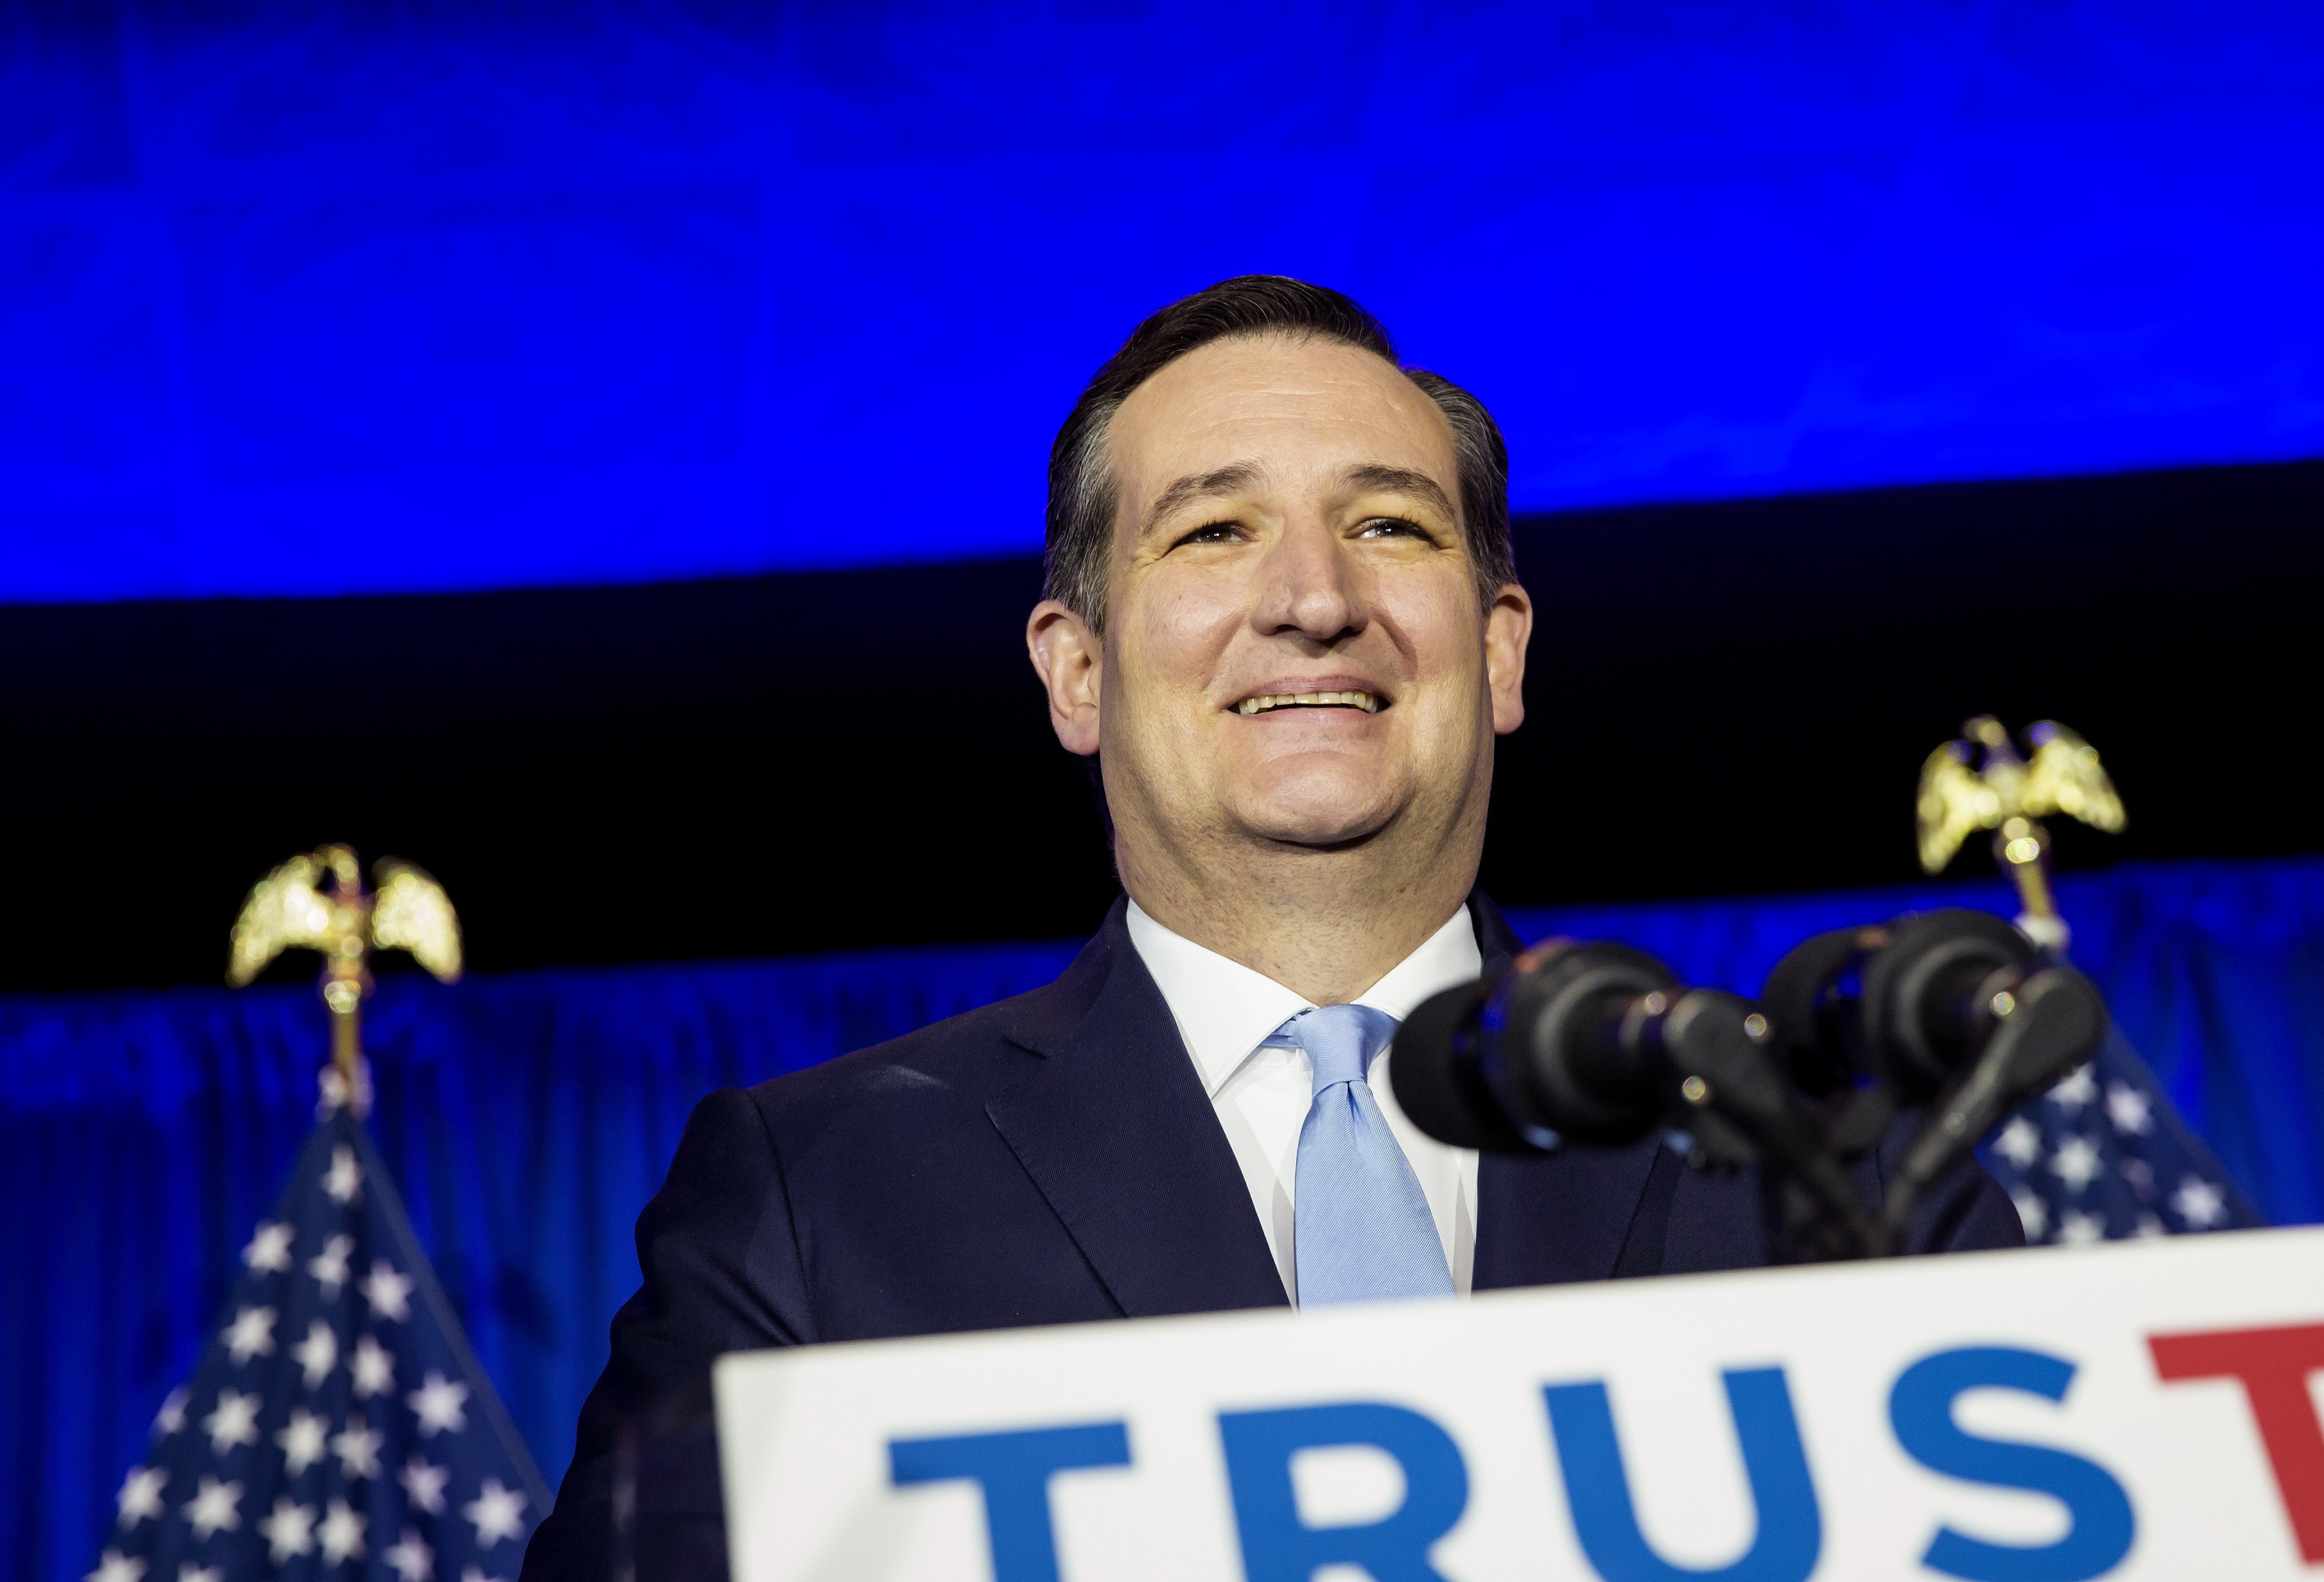 Sen. Ted Cruz celebrates his win in WisconsinþÄôs Republican presidential primary during a rally in Milwaukee, April 5, 2016. Cruz soundly defeated Donald Trump and Gov. John Kasich in Wisconsin, showing his ability to appeal to more than just hard-line and religious conservatives. (Eric Thayer/The New York Times)